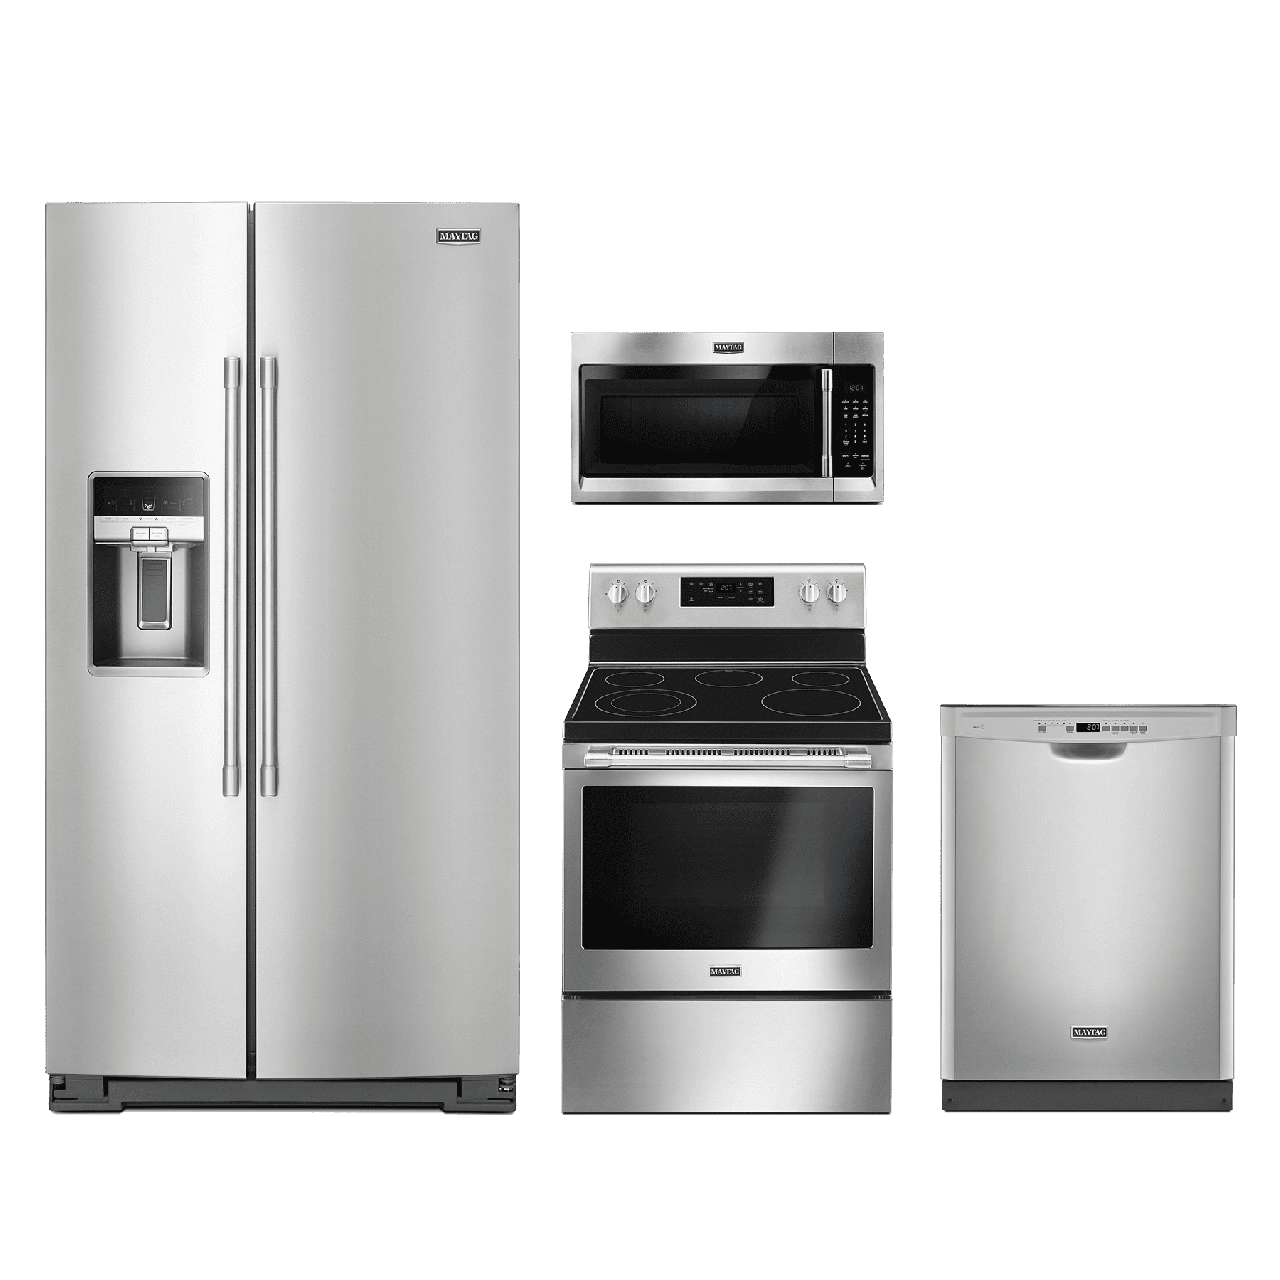 Kitchenaid 4 Piece Kitchen Appliance Package With Electric: Maytag® 4 Piece Kitchen Package-Fingerprint Resistant